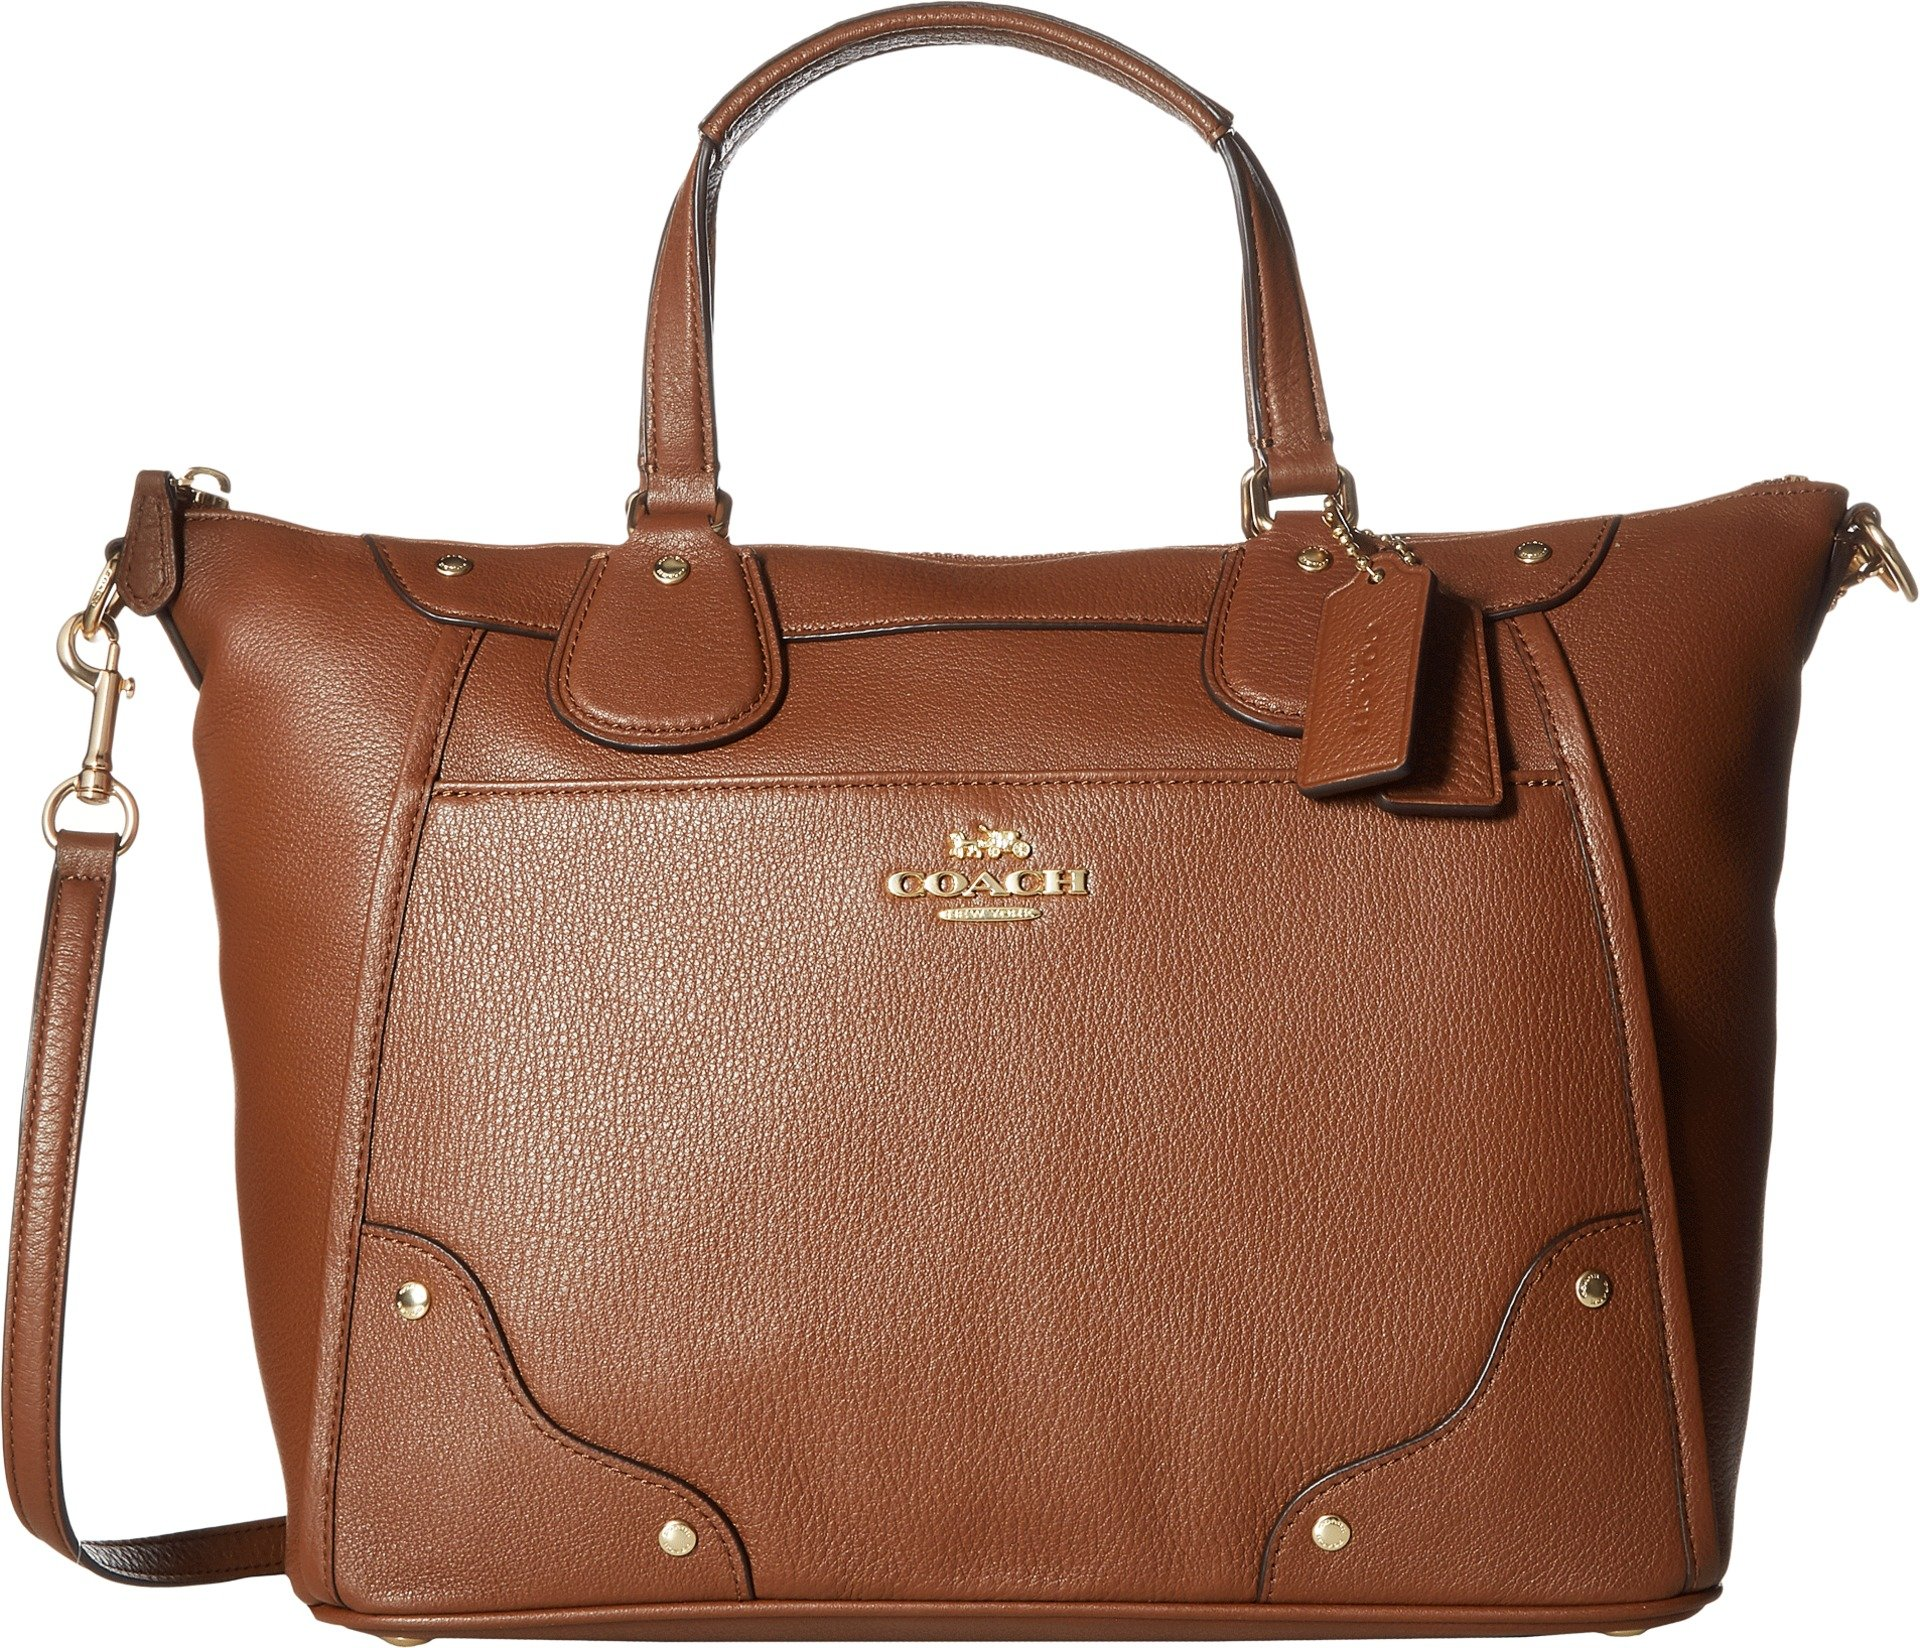 COACH Womens Grain Leather Mickie Satchel